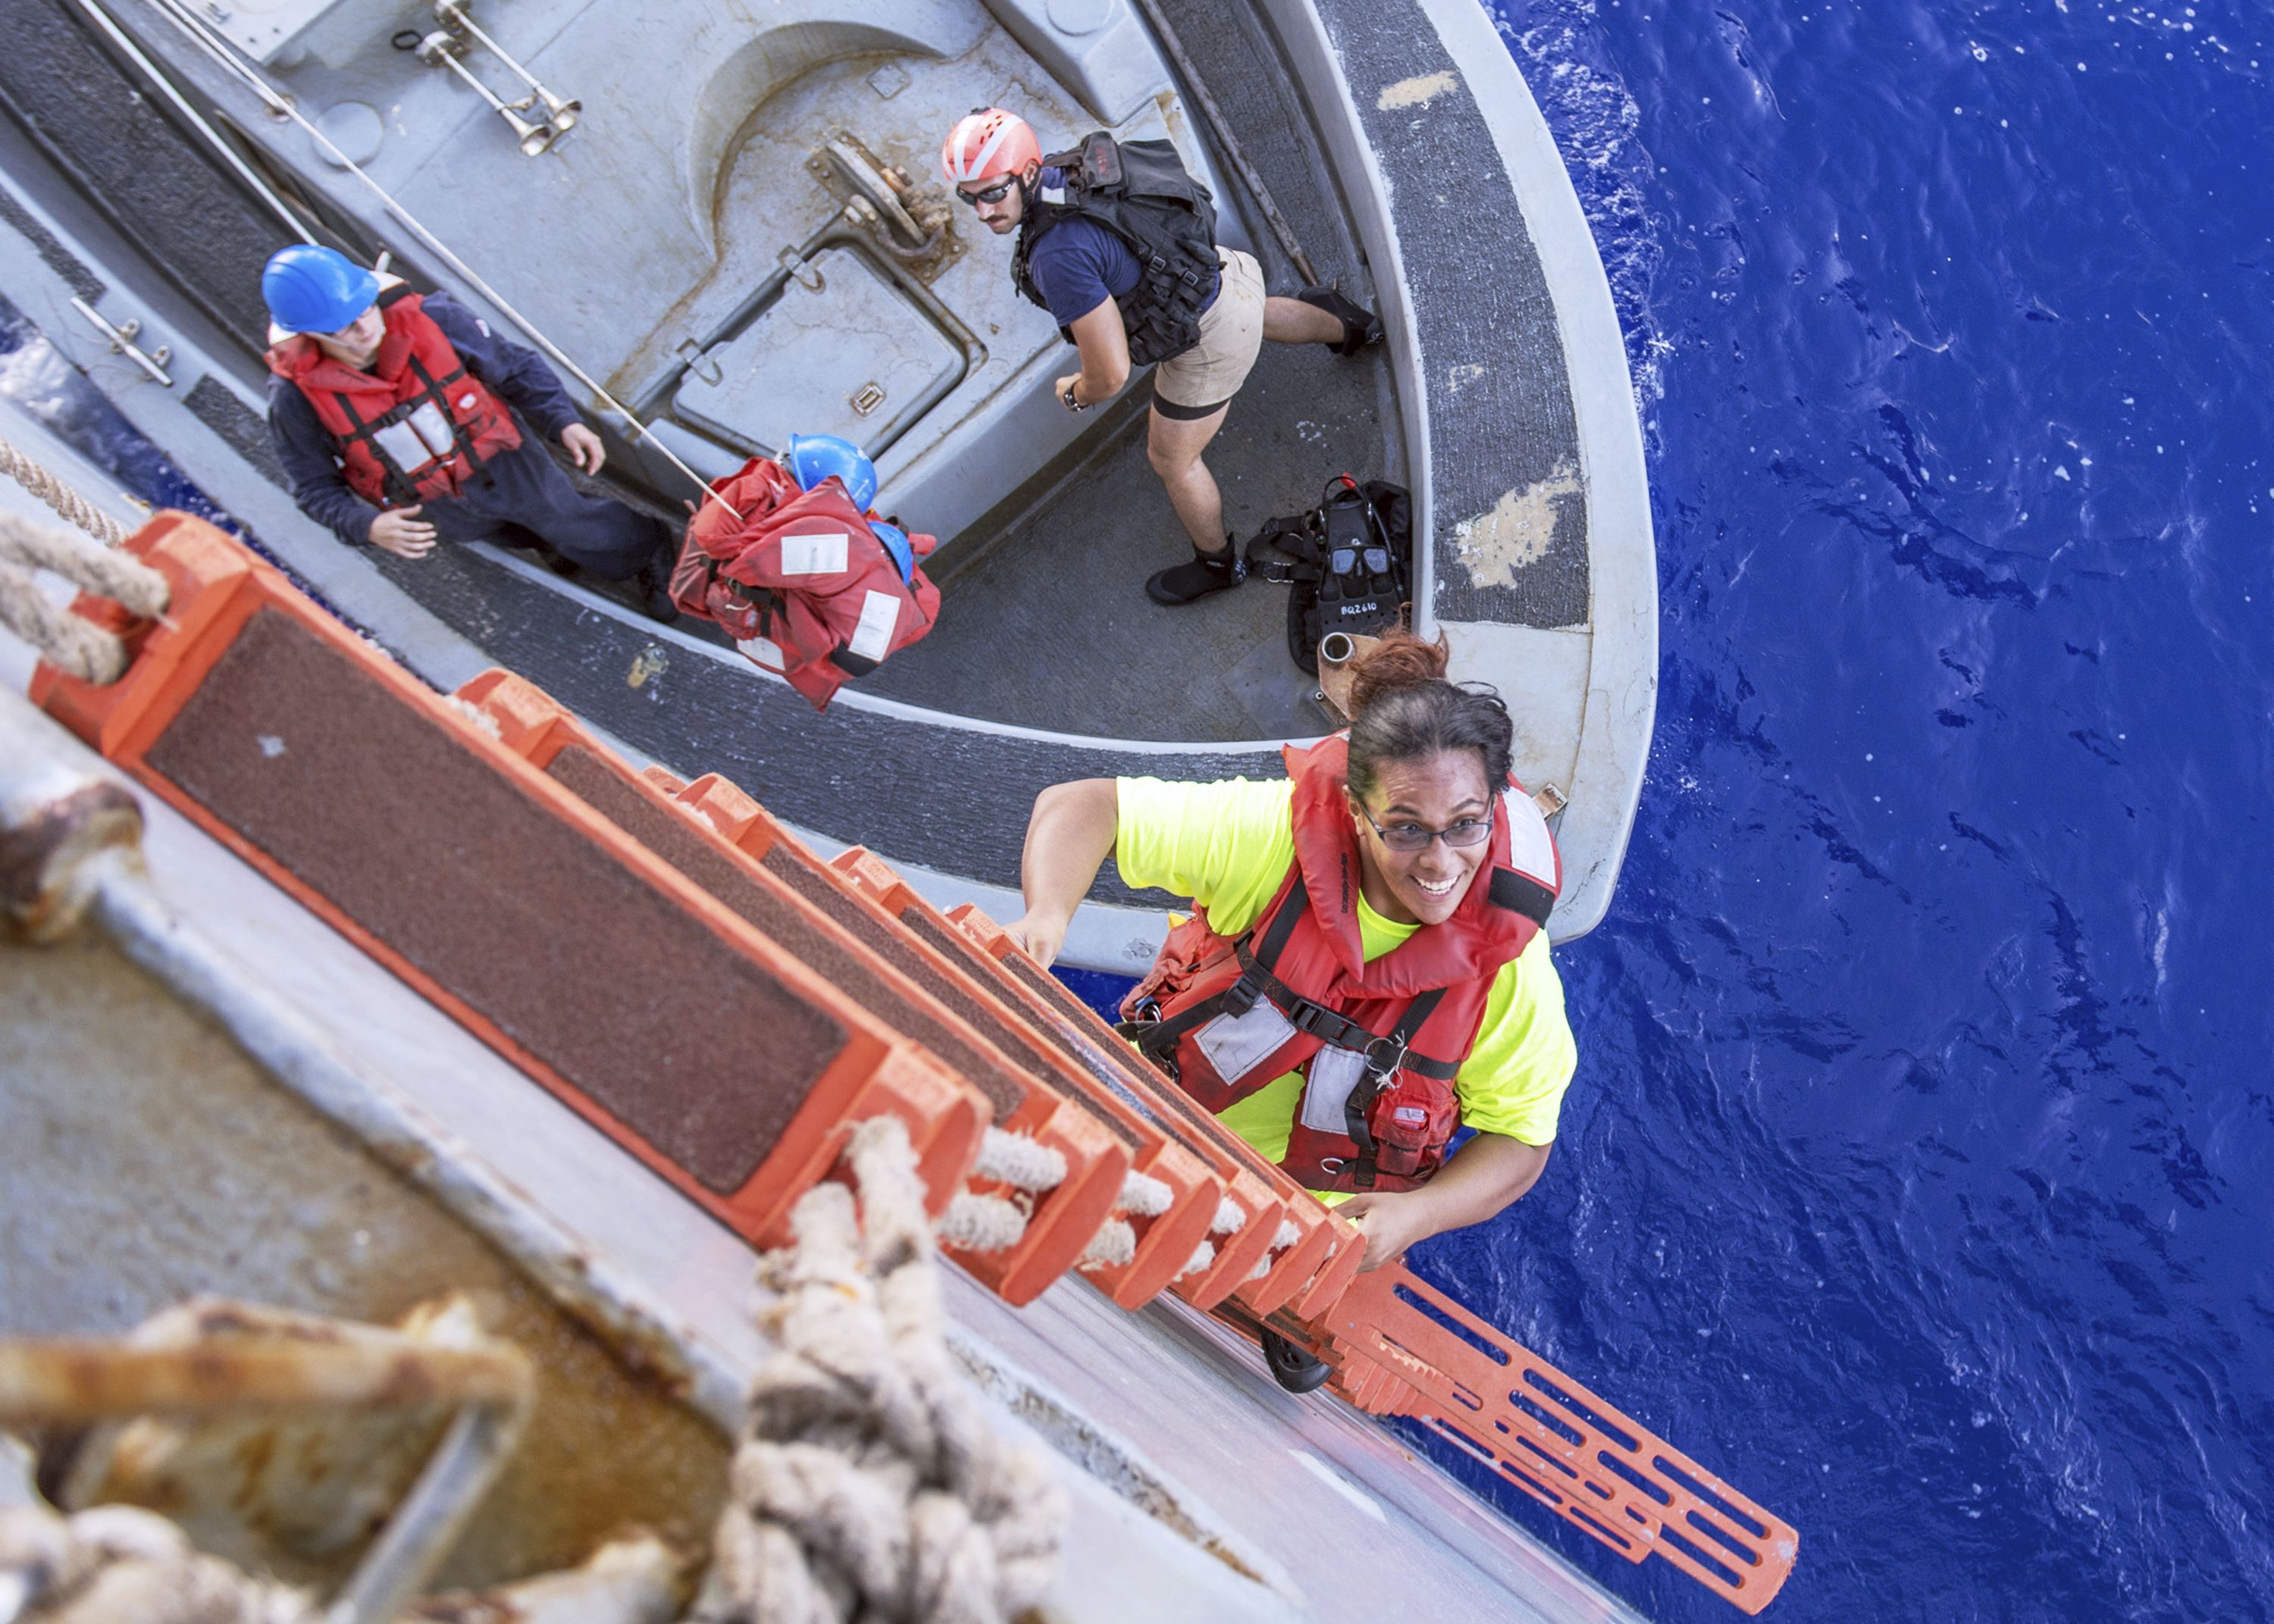 Tasha Fuiaba, an American mariner, climbs the accommodation ladder to board the dock landing ship USS Ashland after the Navy ship rescued two Honolulu women and their dogs after being lost at sea for several months while trying to sail from Hawaii to Tahiti.